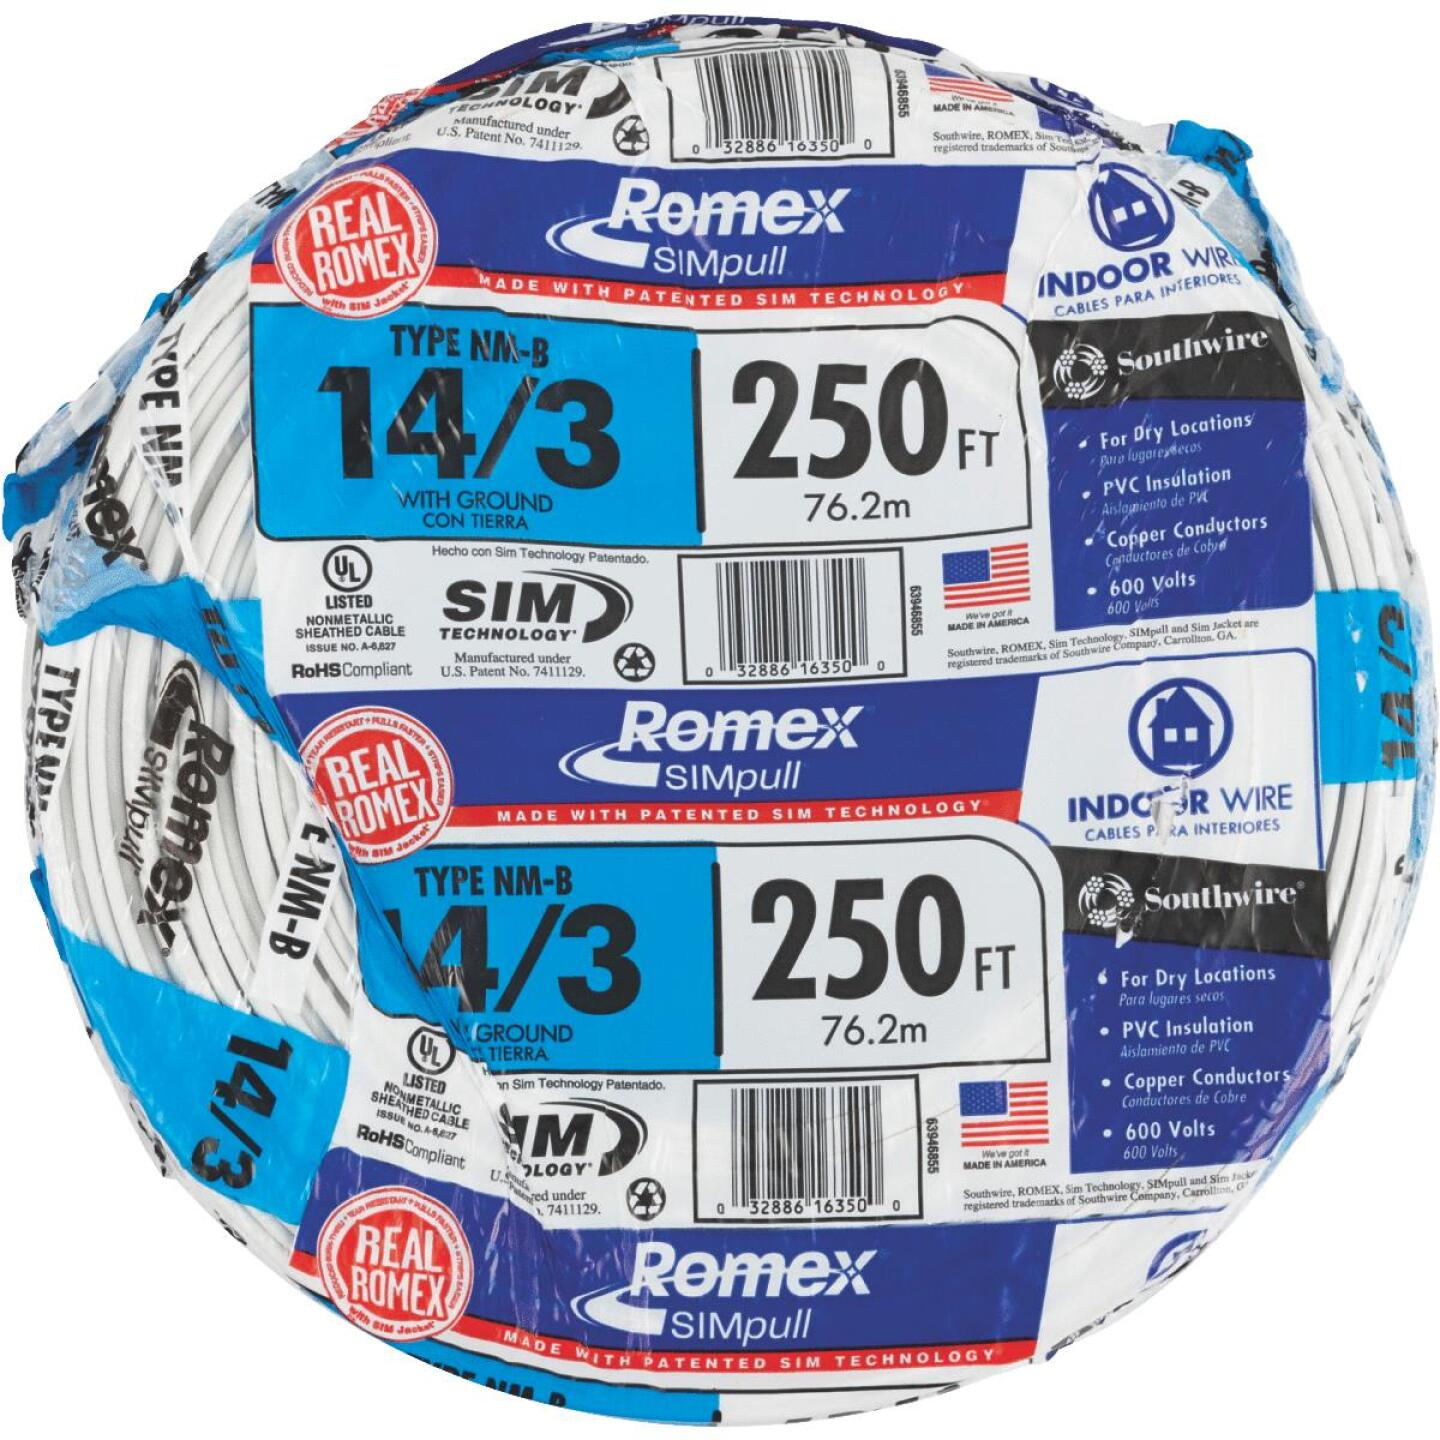 Romex 250 Ft. 14-3 Solid White NMW/G Wire Image 2